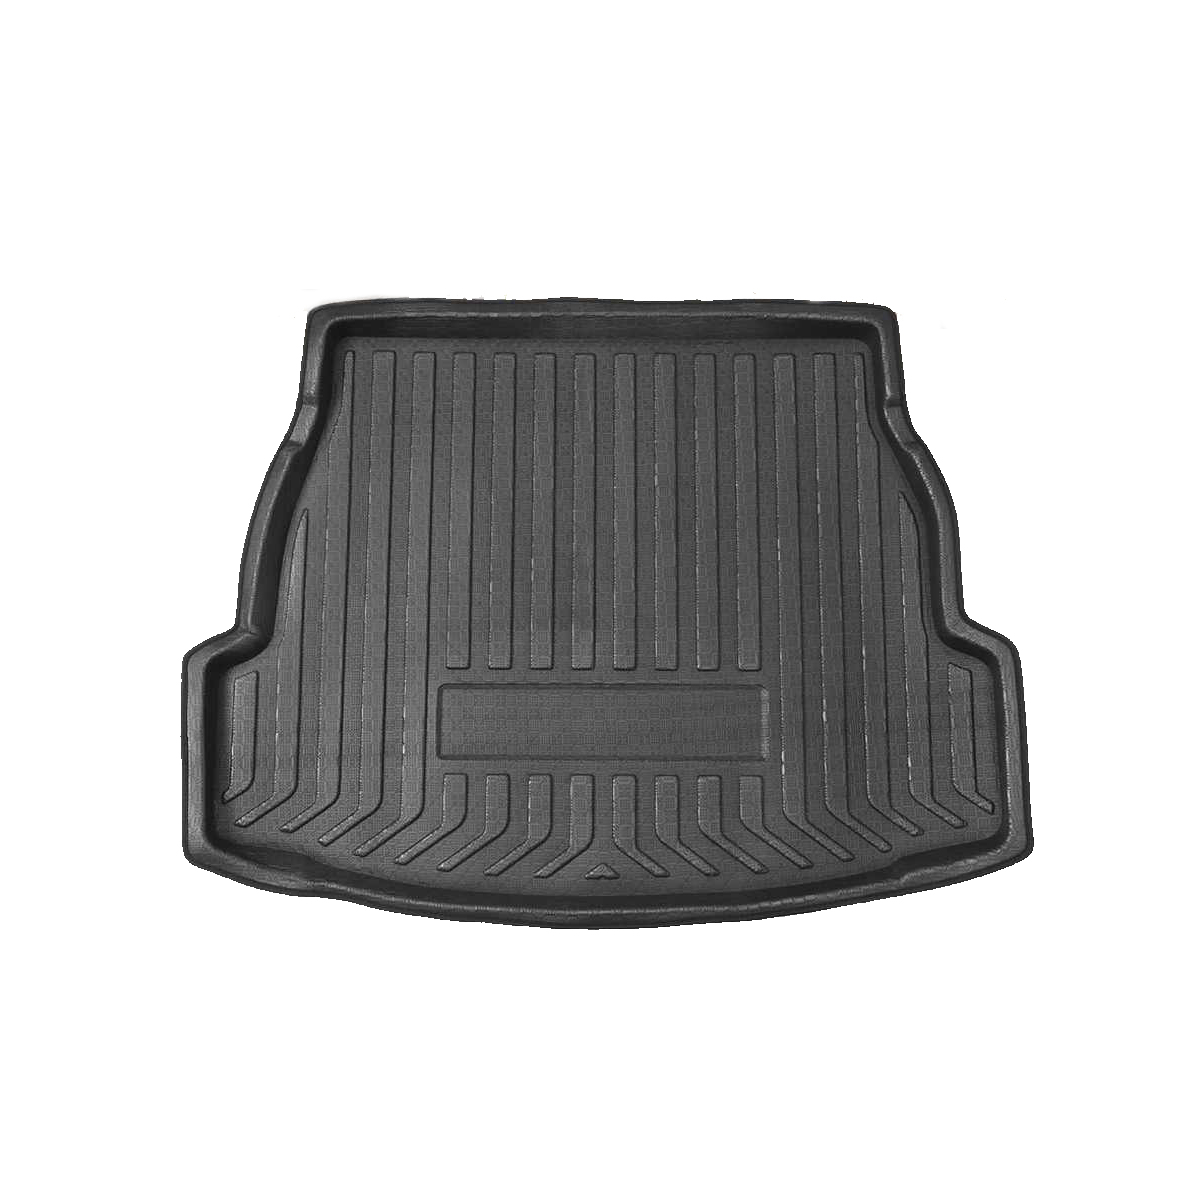 cheapest For Toyota RAV4 2019  Car Rear Trunk Boot Liner Cargo Mat Luggage Tray Floor Carpet Mud Protector Replacement Car Accessories